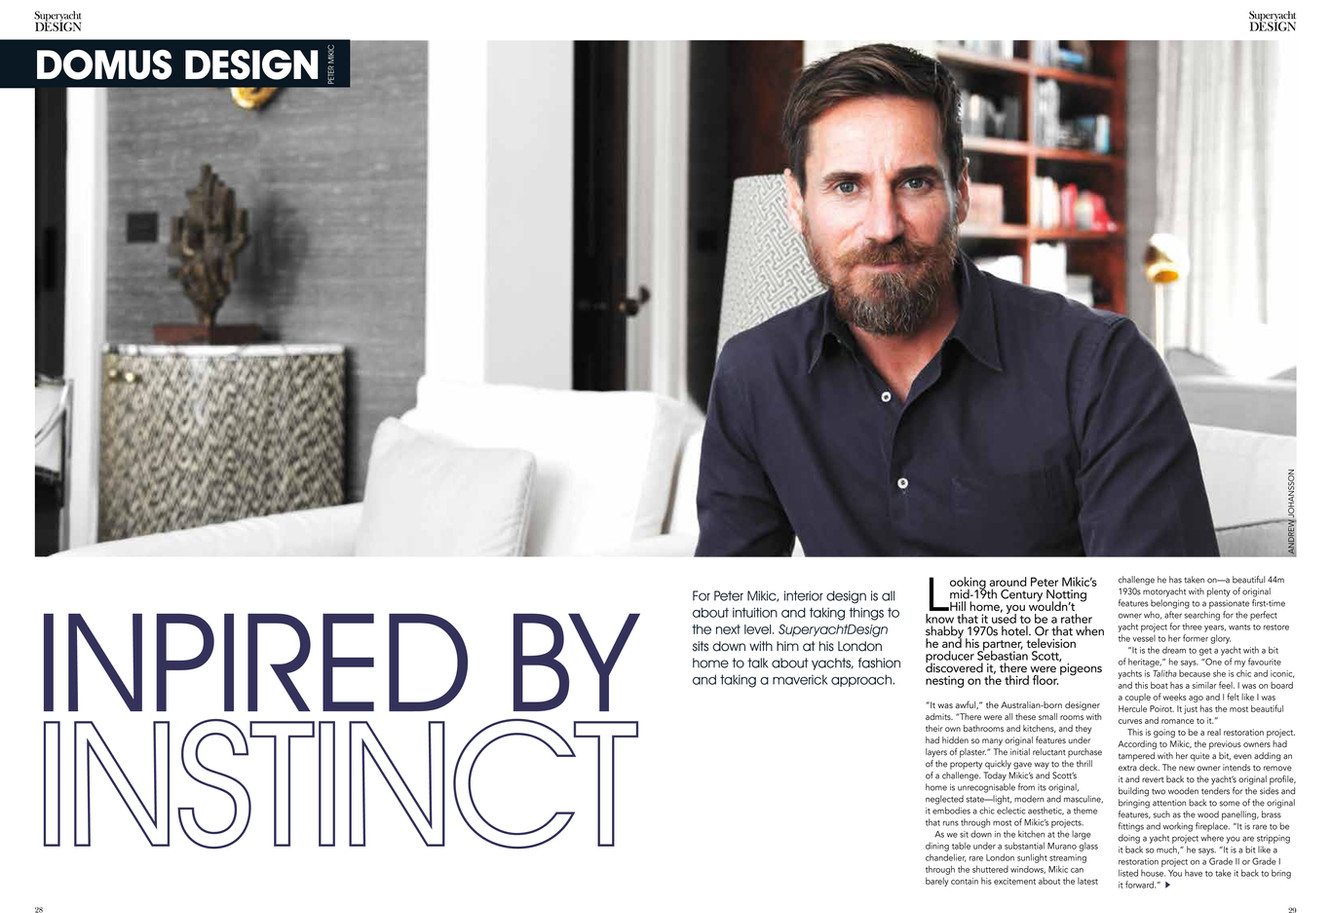 Meeting designer Peter Mikic, featured in Domus, SuperyachtDESIGN 24. Images by Andrew Johansson.